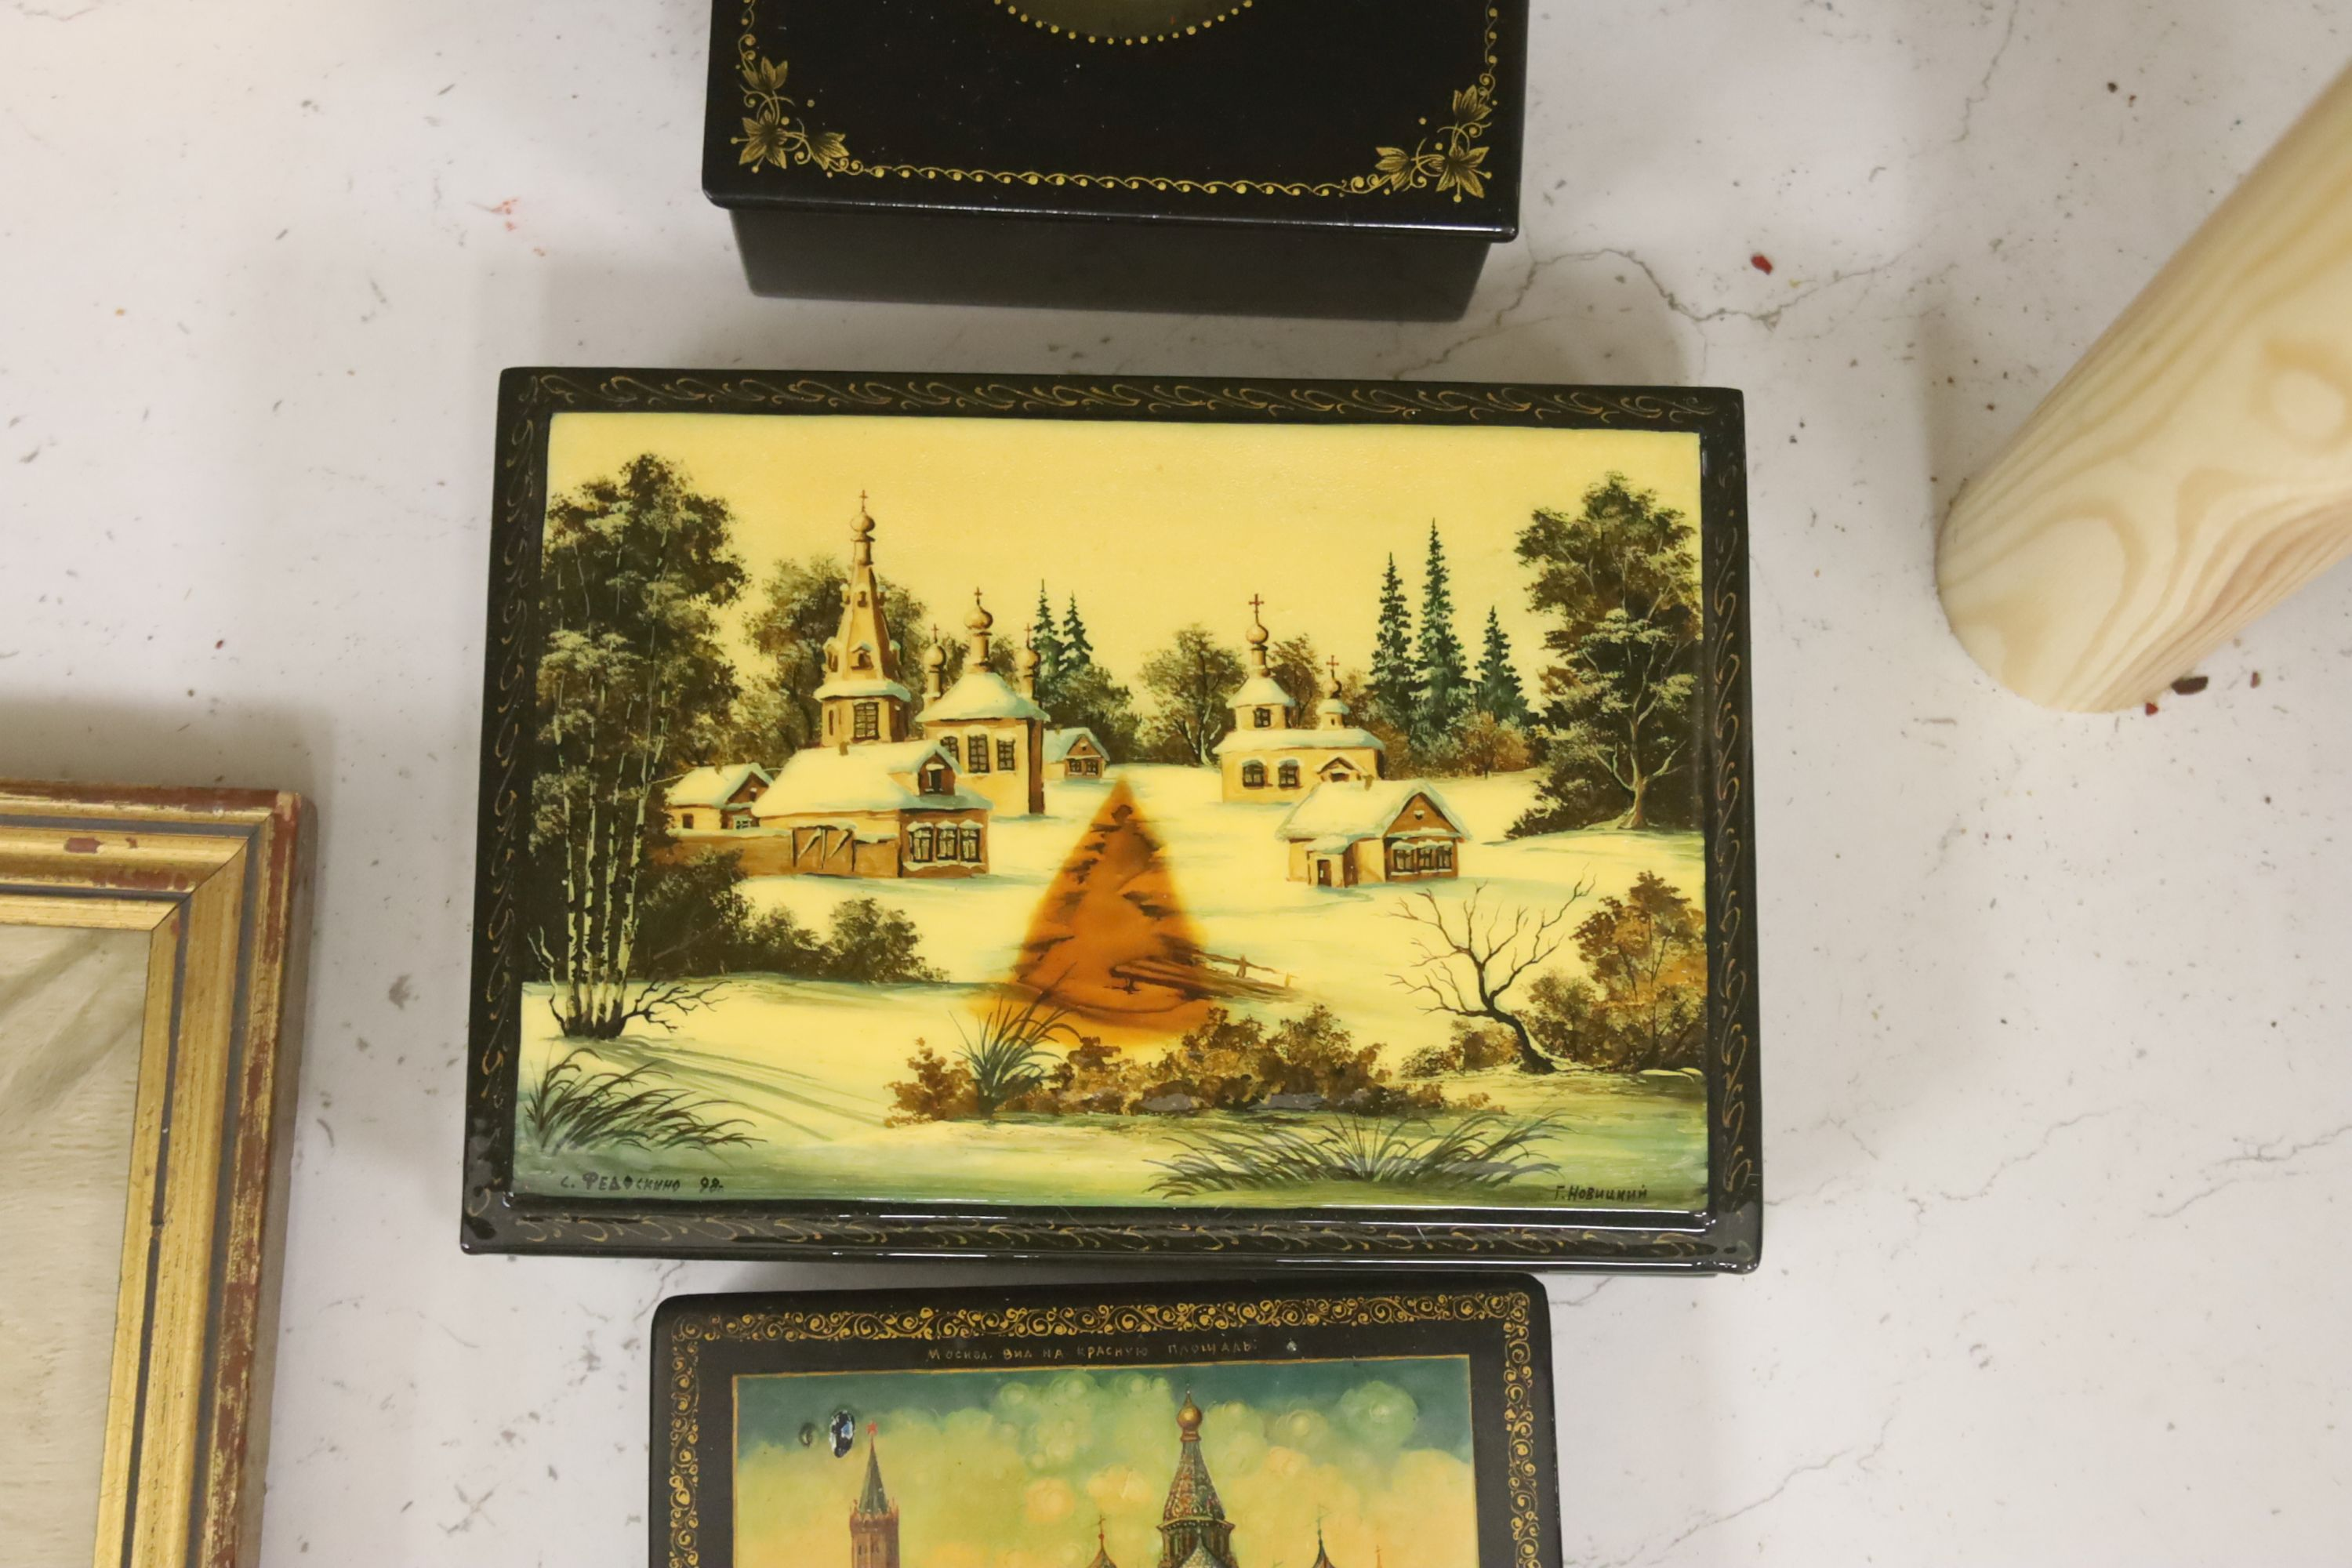 Six Russian Papier mache boxes, each decorated with churches or cathedrals, largest 17 cm - Image 4 of 6